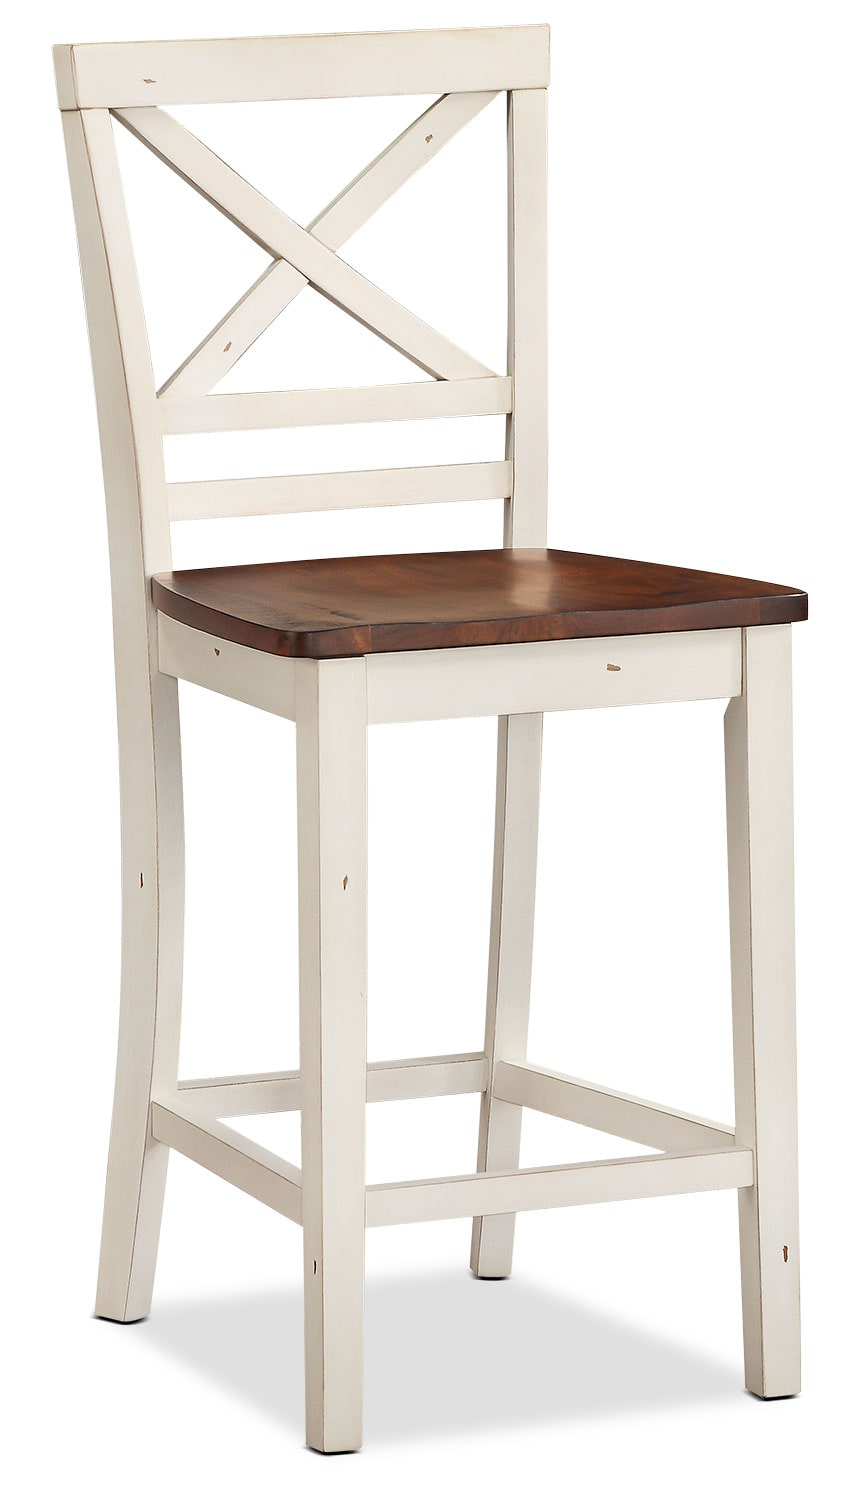 Amelia Counter-Height Dining Chair – White